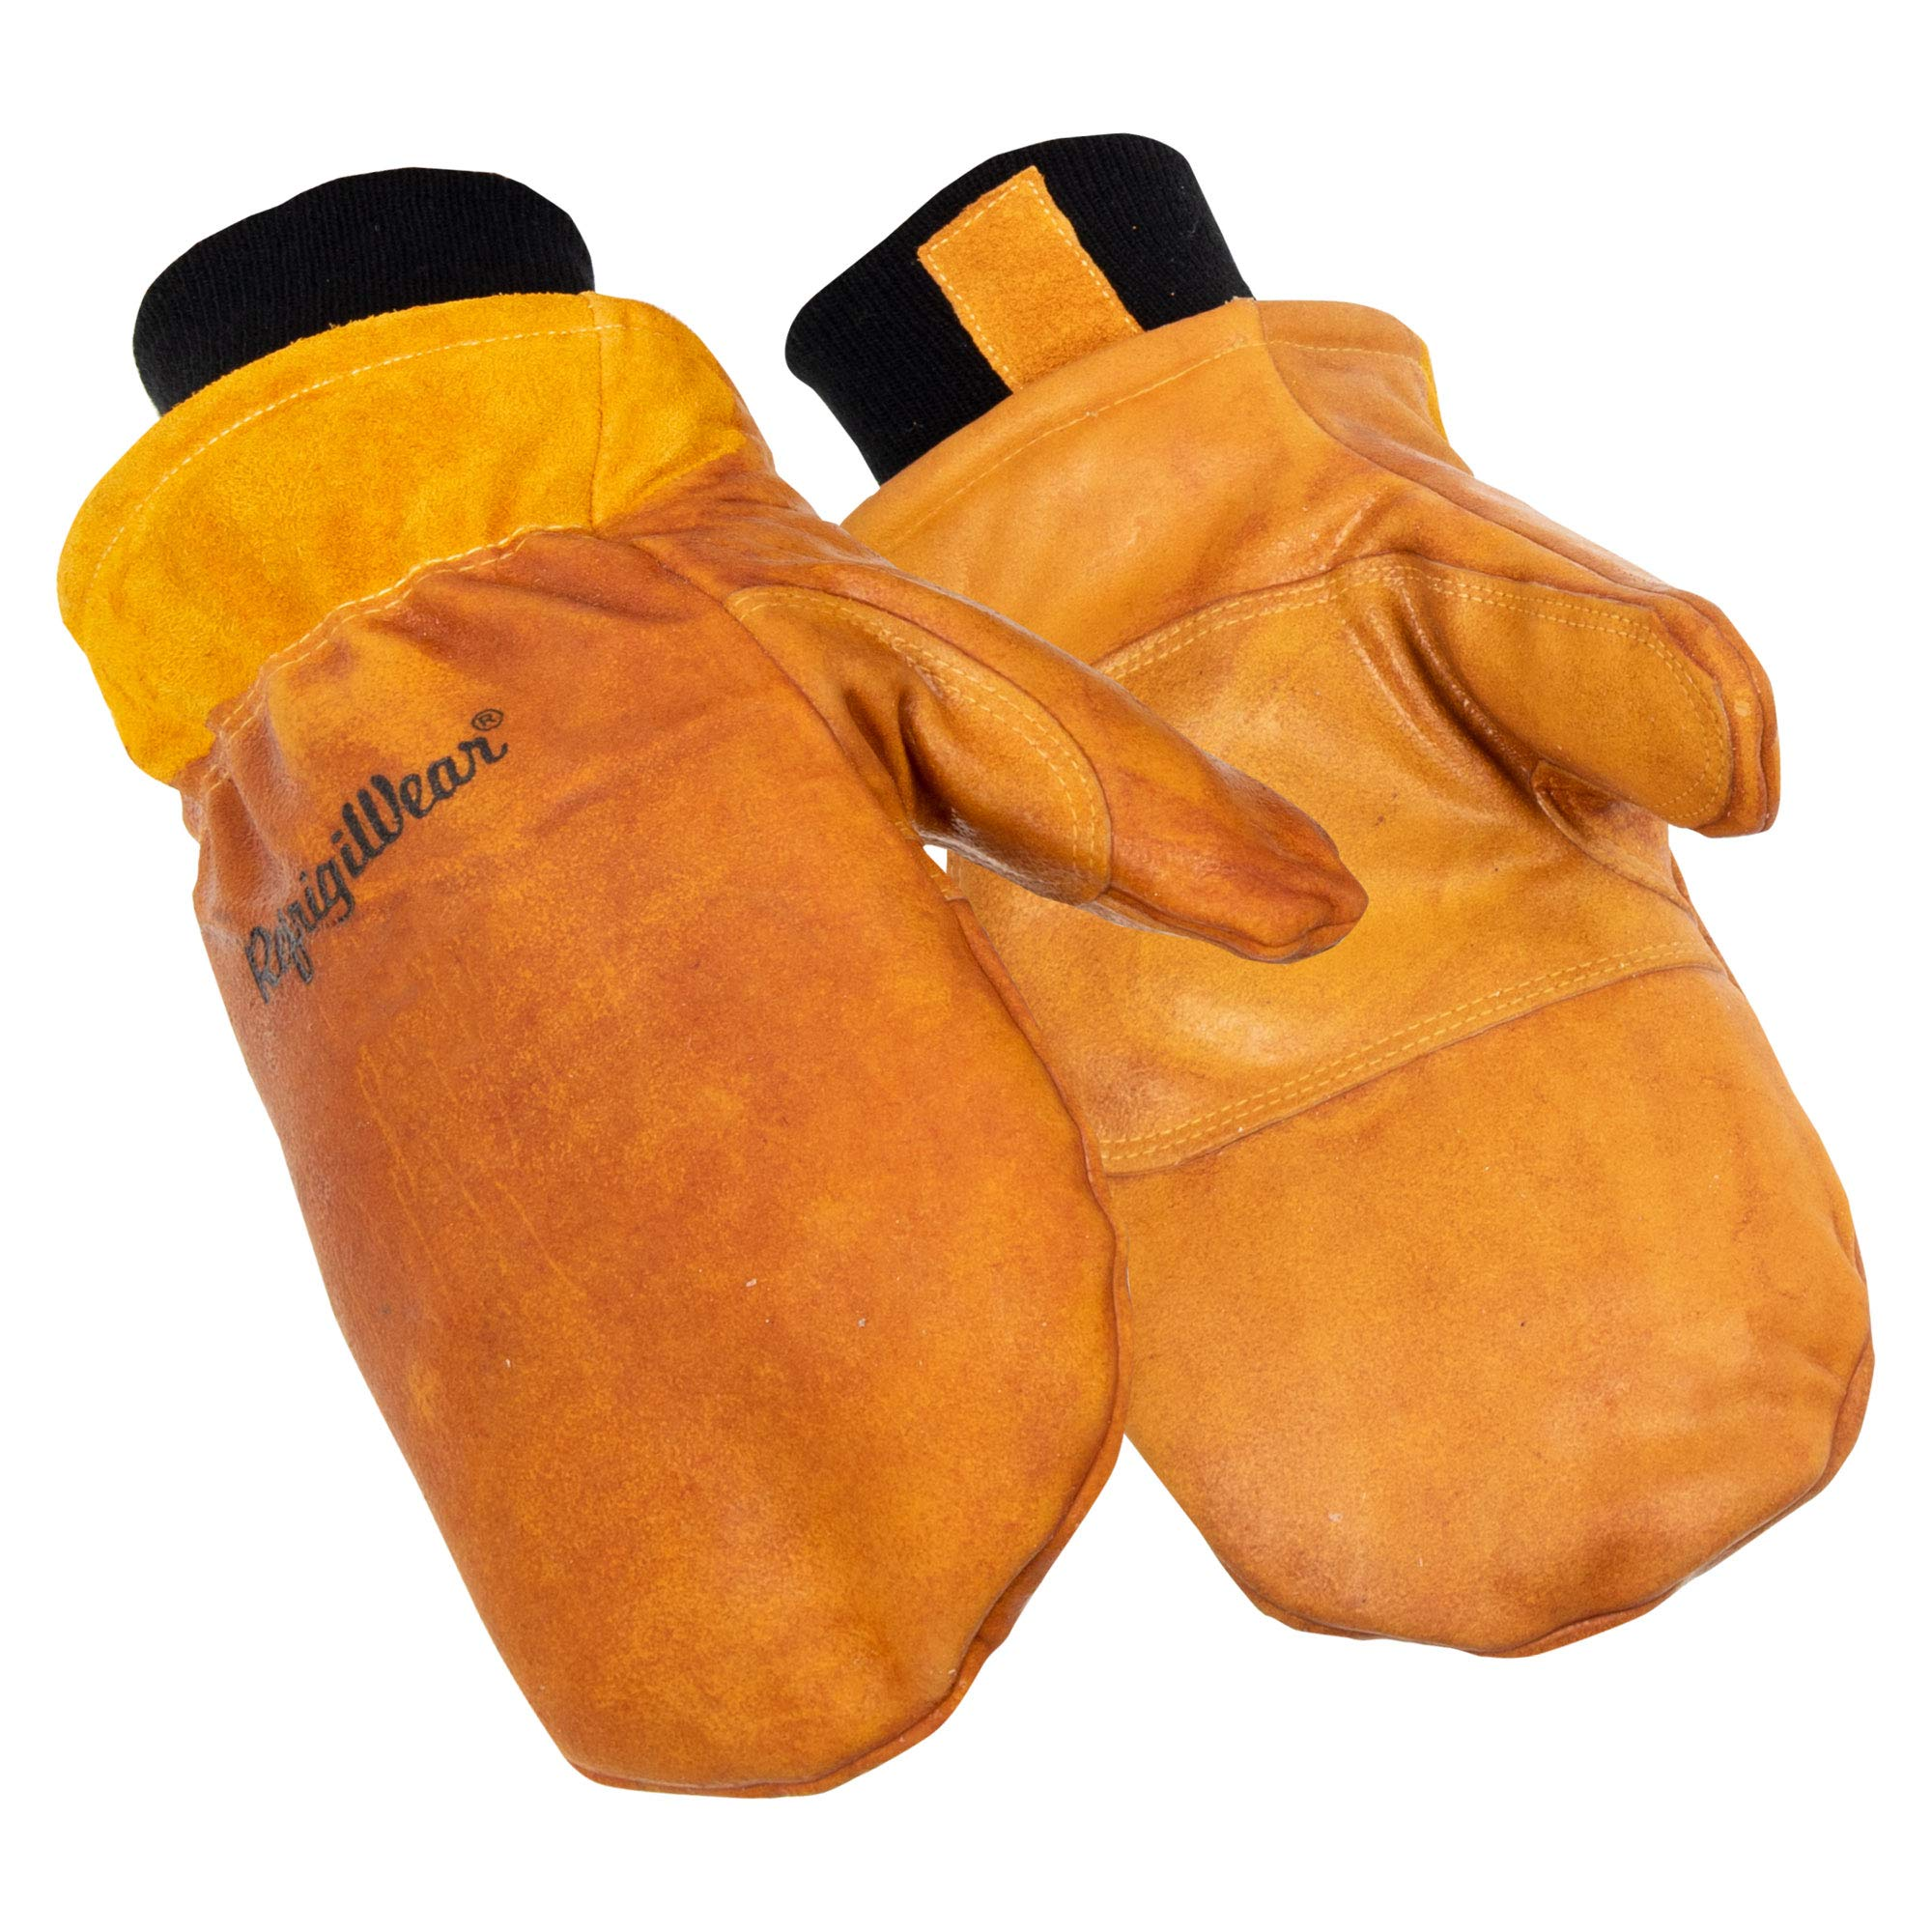 RefrigiWear Men's Water-Repellent Latex Dipped Insulated Cowhide Leather Mittens